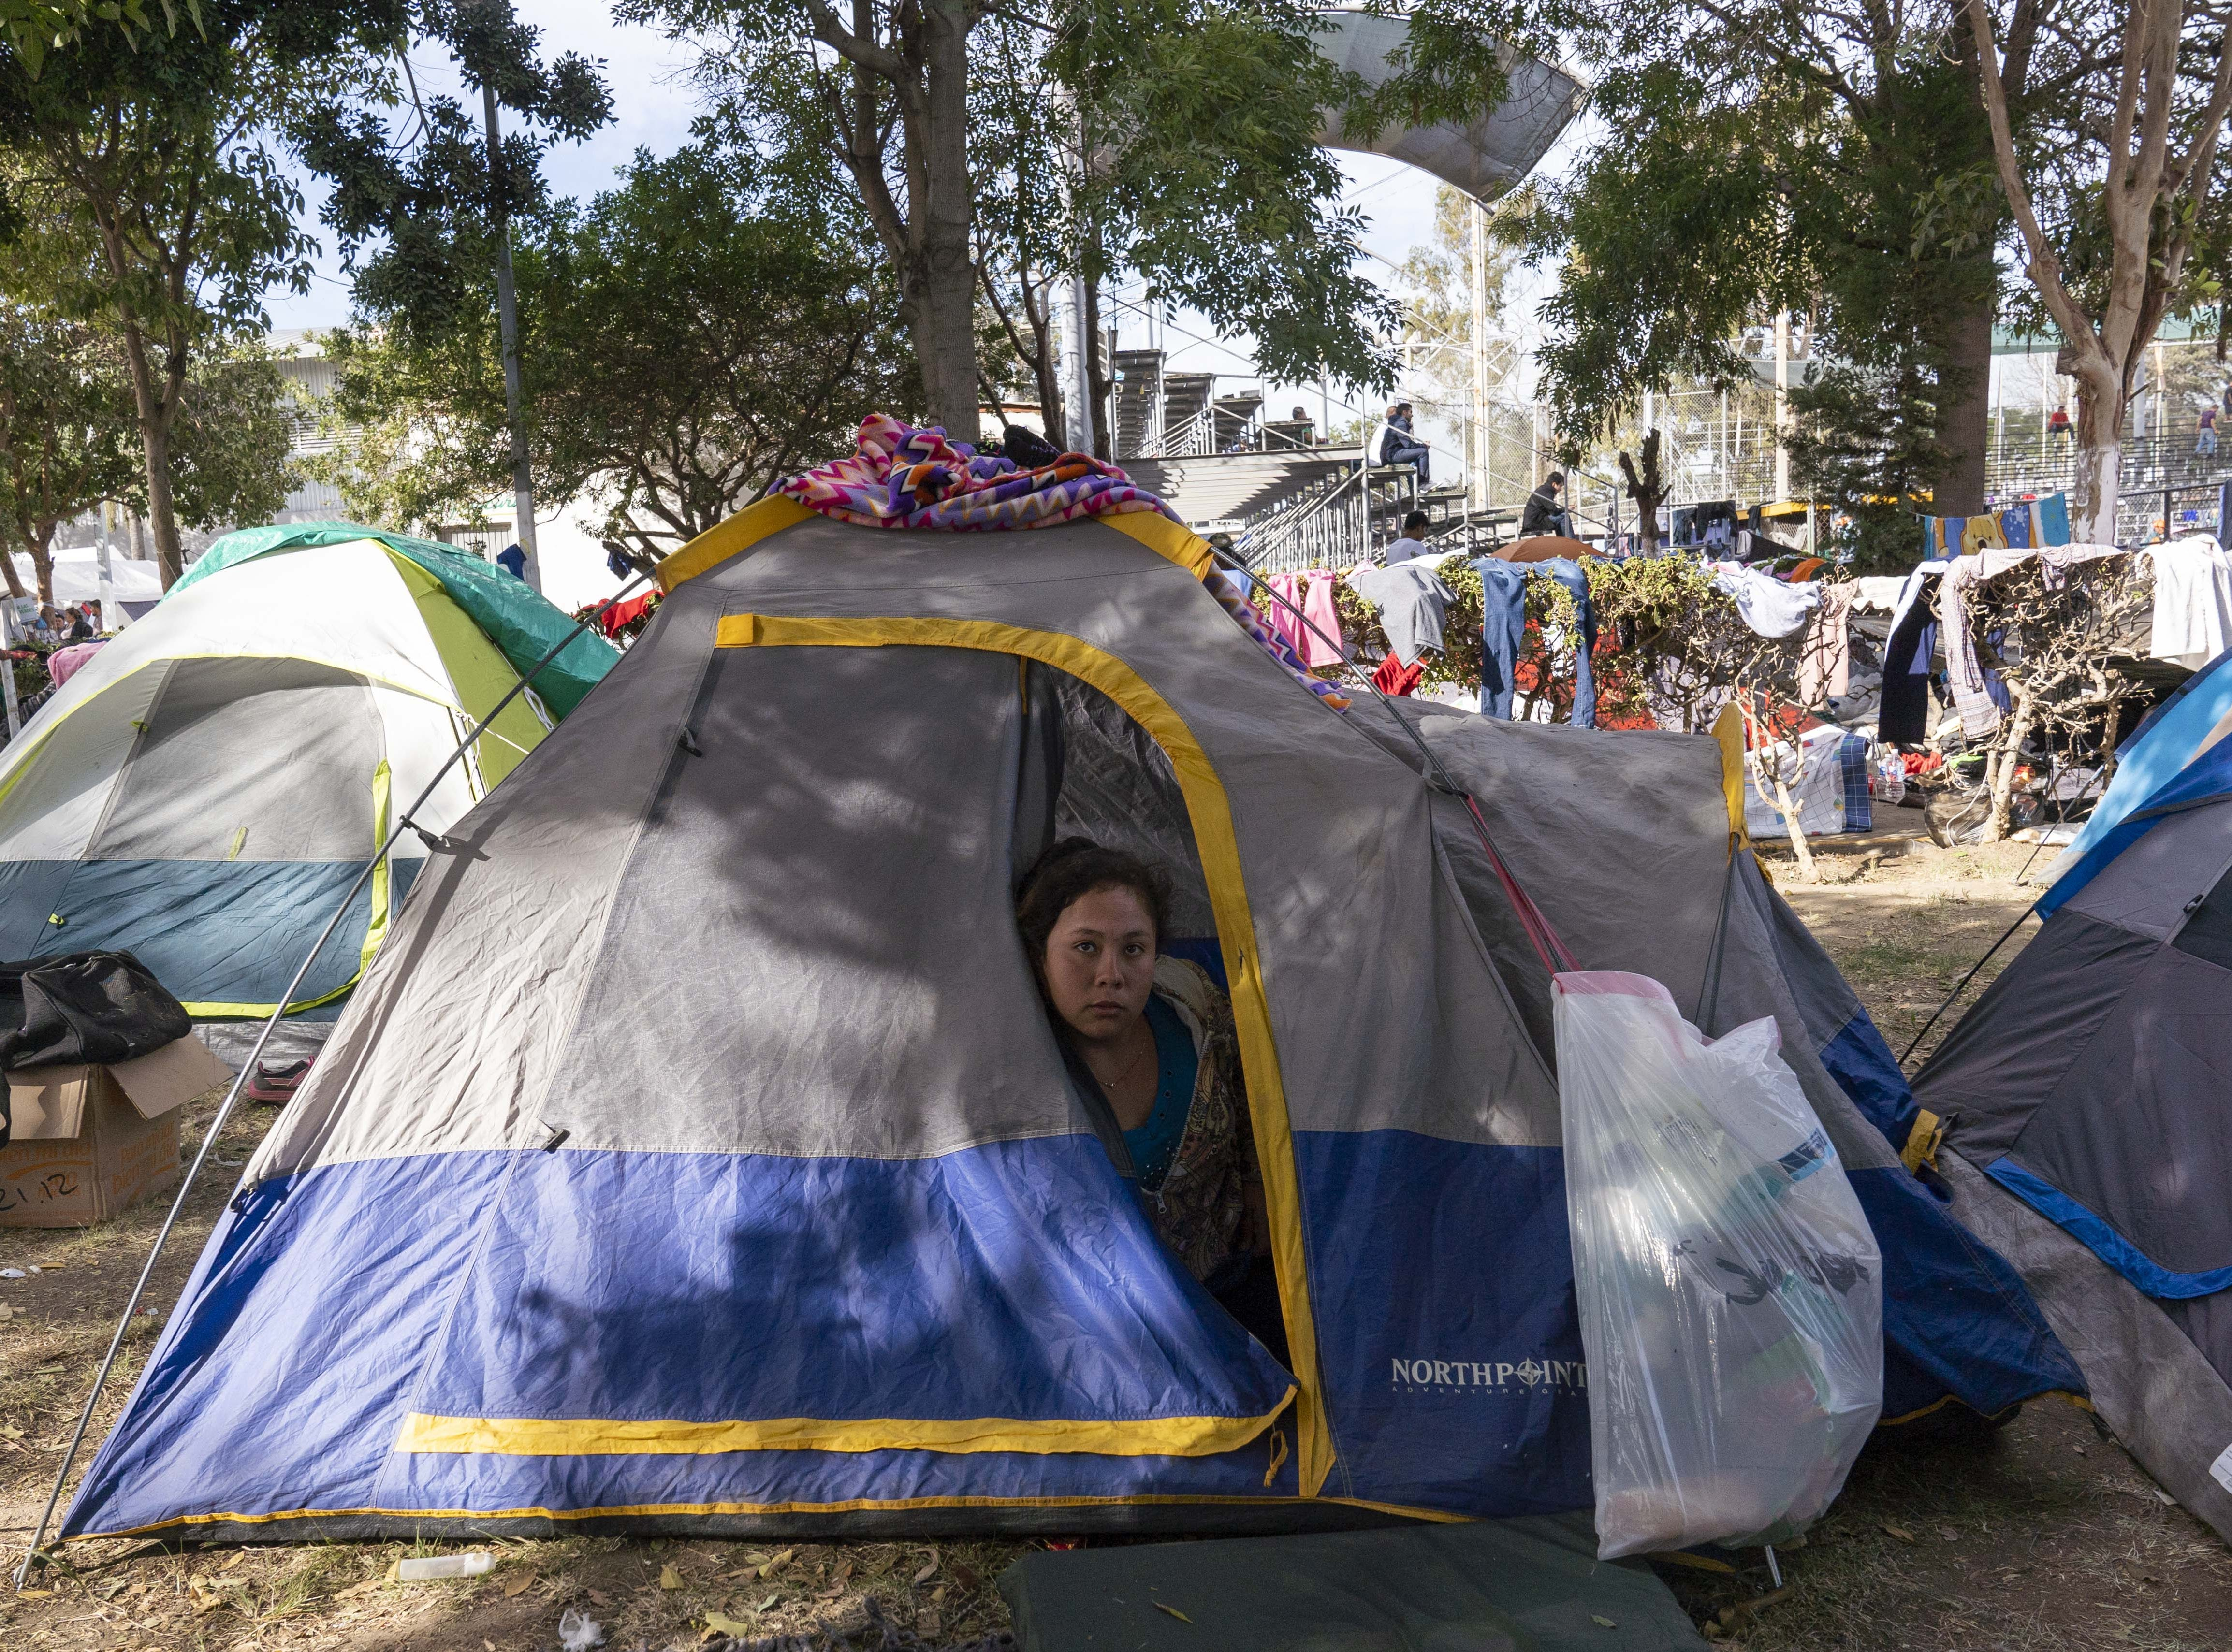 More than 2,500 mostly Central American migrants were staying at the Unidad Deportiva Benito Juarez, a makeshift shelter, in Tijuana, Mexico, on Nov. 19, 2018. Migrants set up camp around the baseball stadium, propping up tents using whatever materials they have available. Bathrooms and outdoor showers were installed in the outfield.